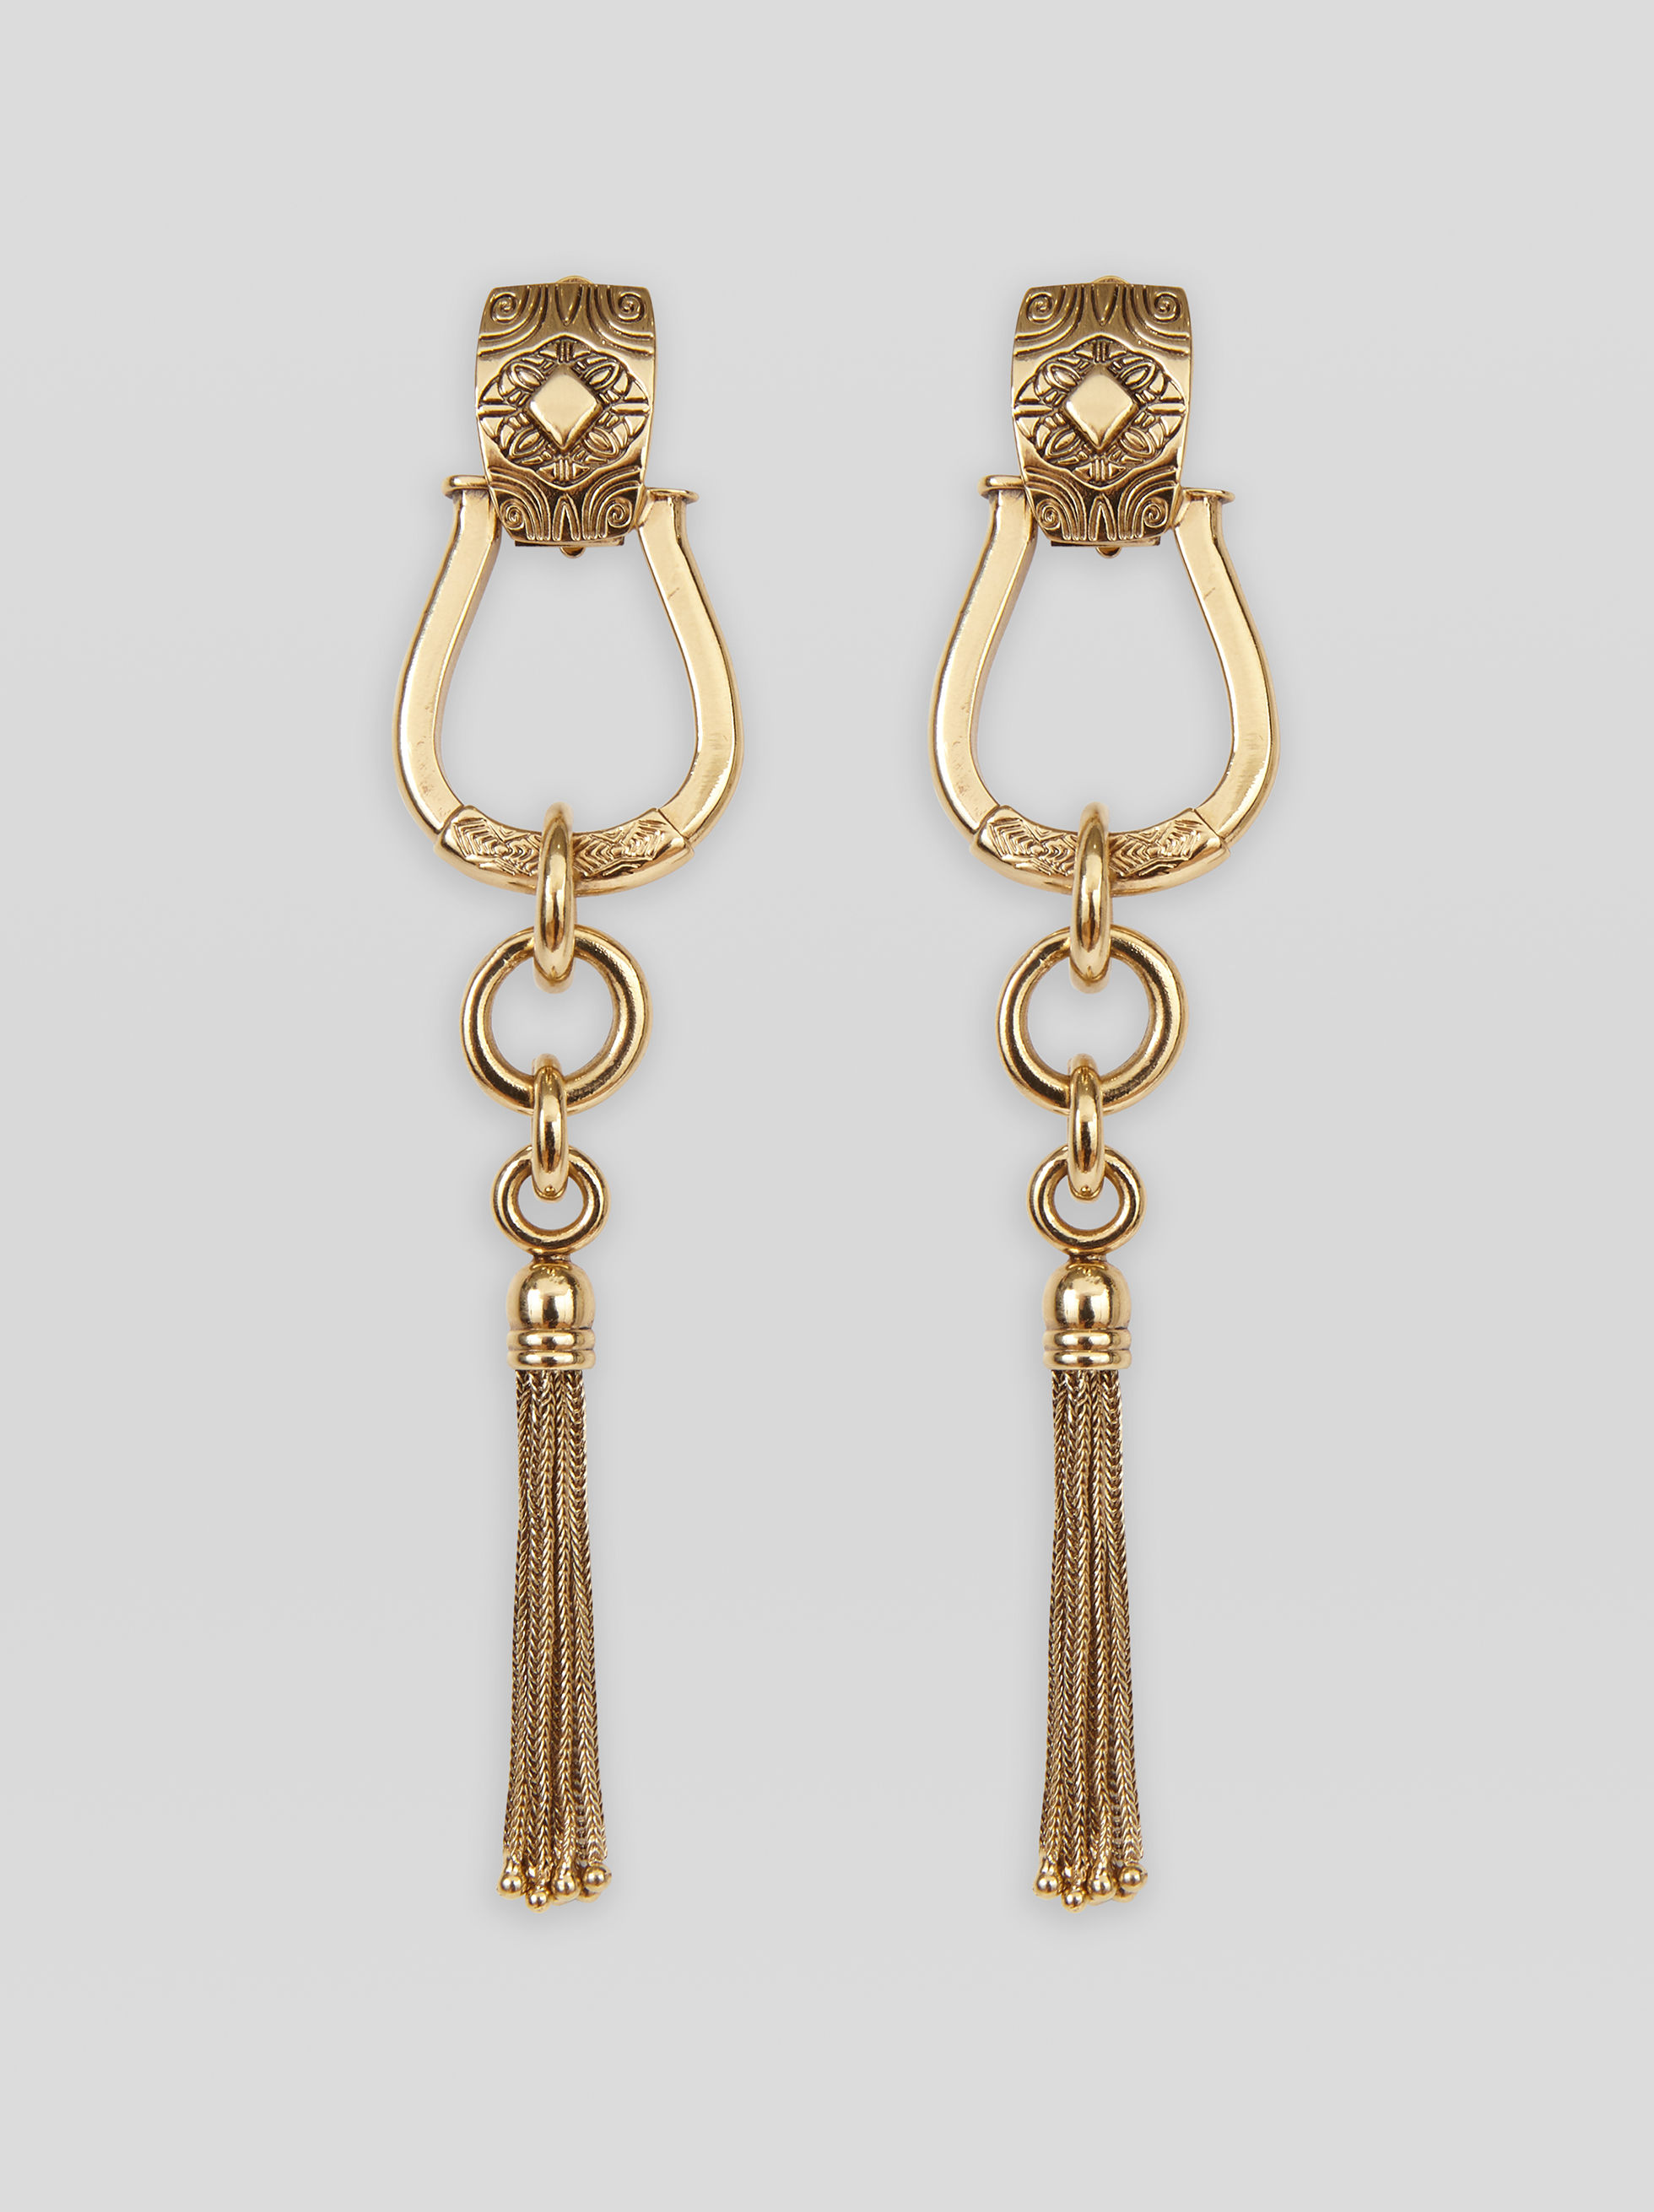 EARRINGS WITH FRINGE